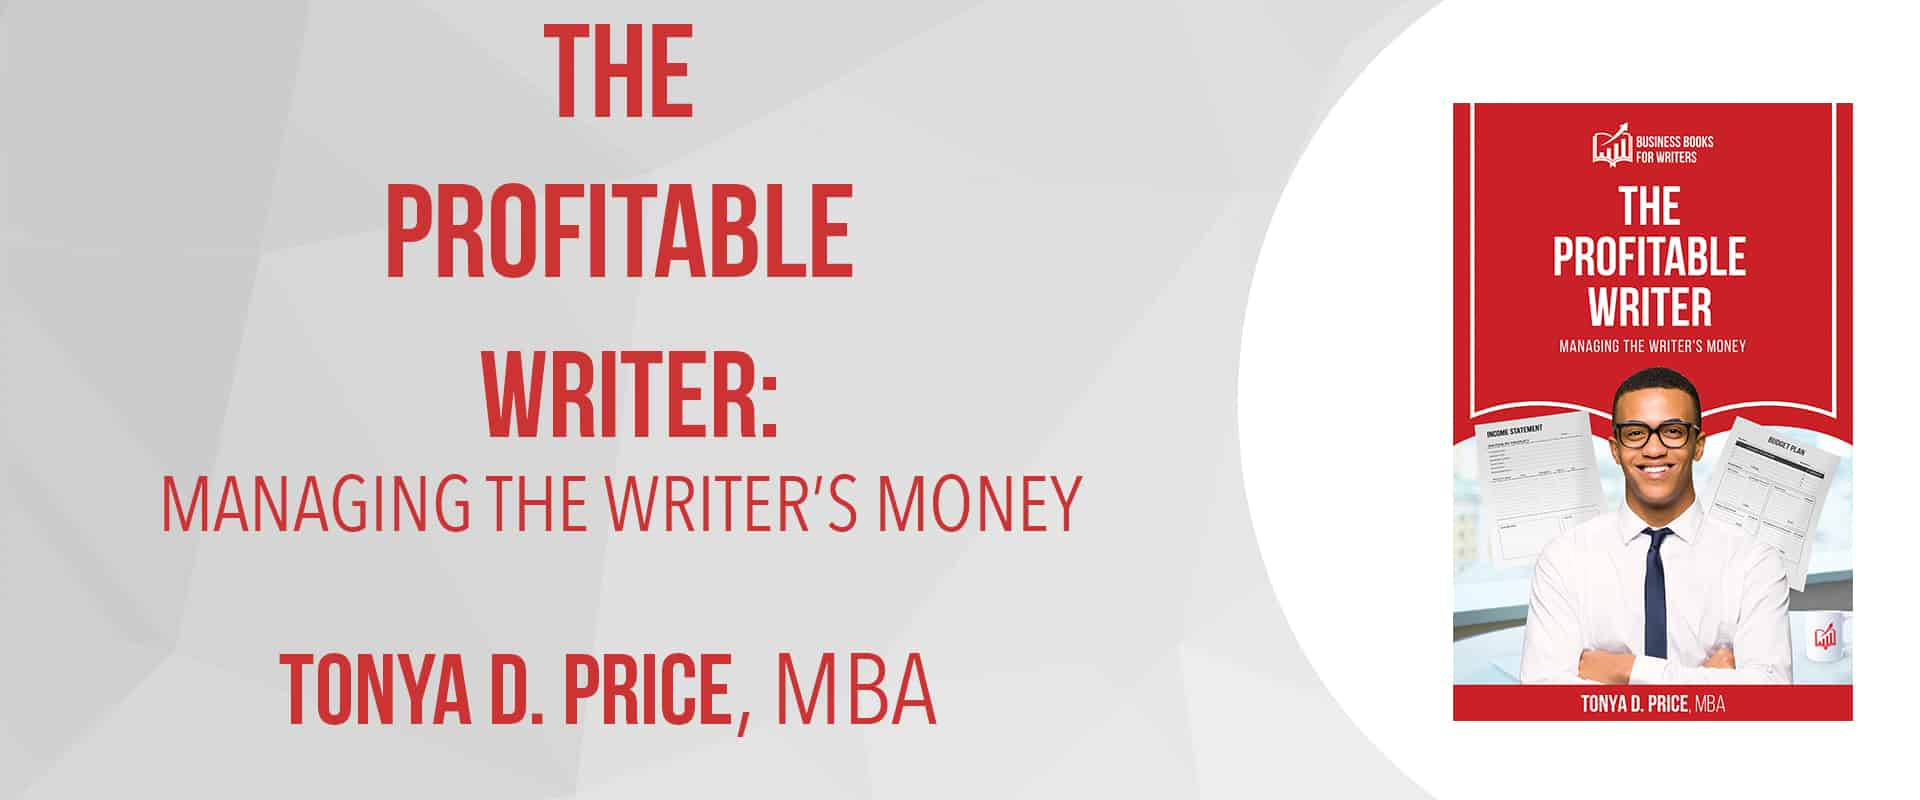 The Profitable Writer: Managing the Writer's Money, 5th book in the Business Books For Writer's series